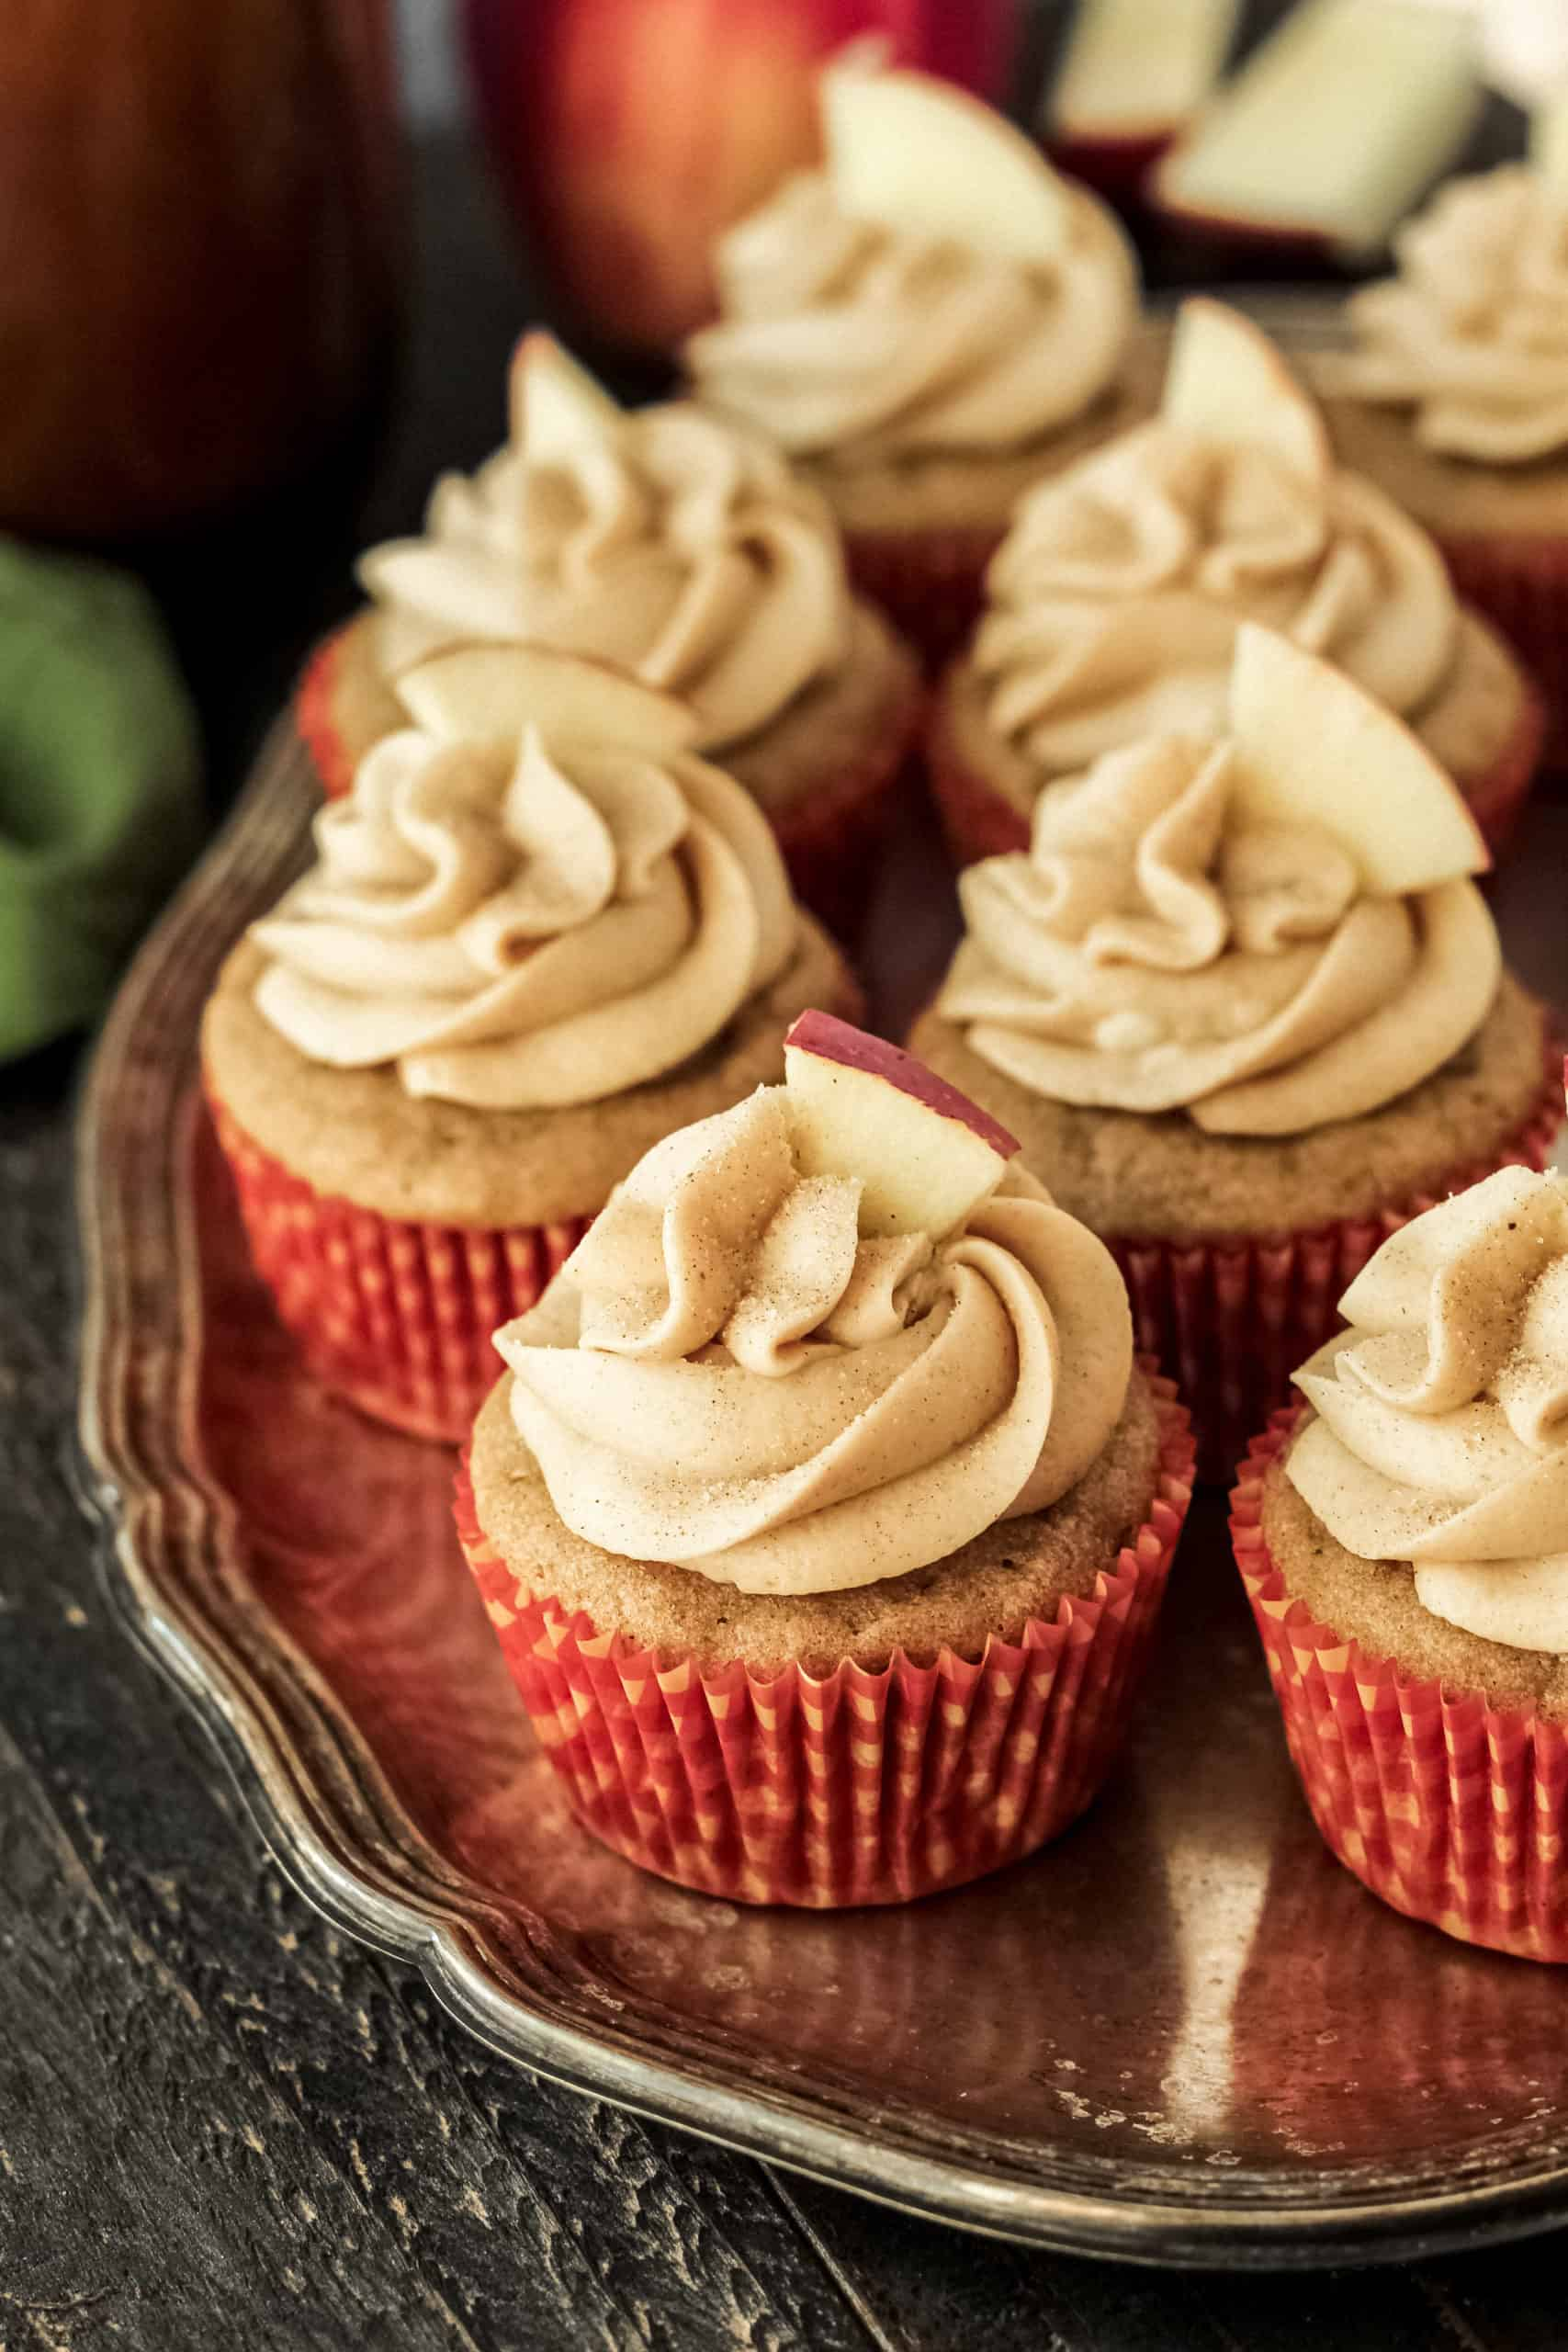 Apple cider cupcakes on a silver tray.